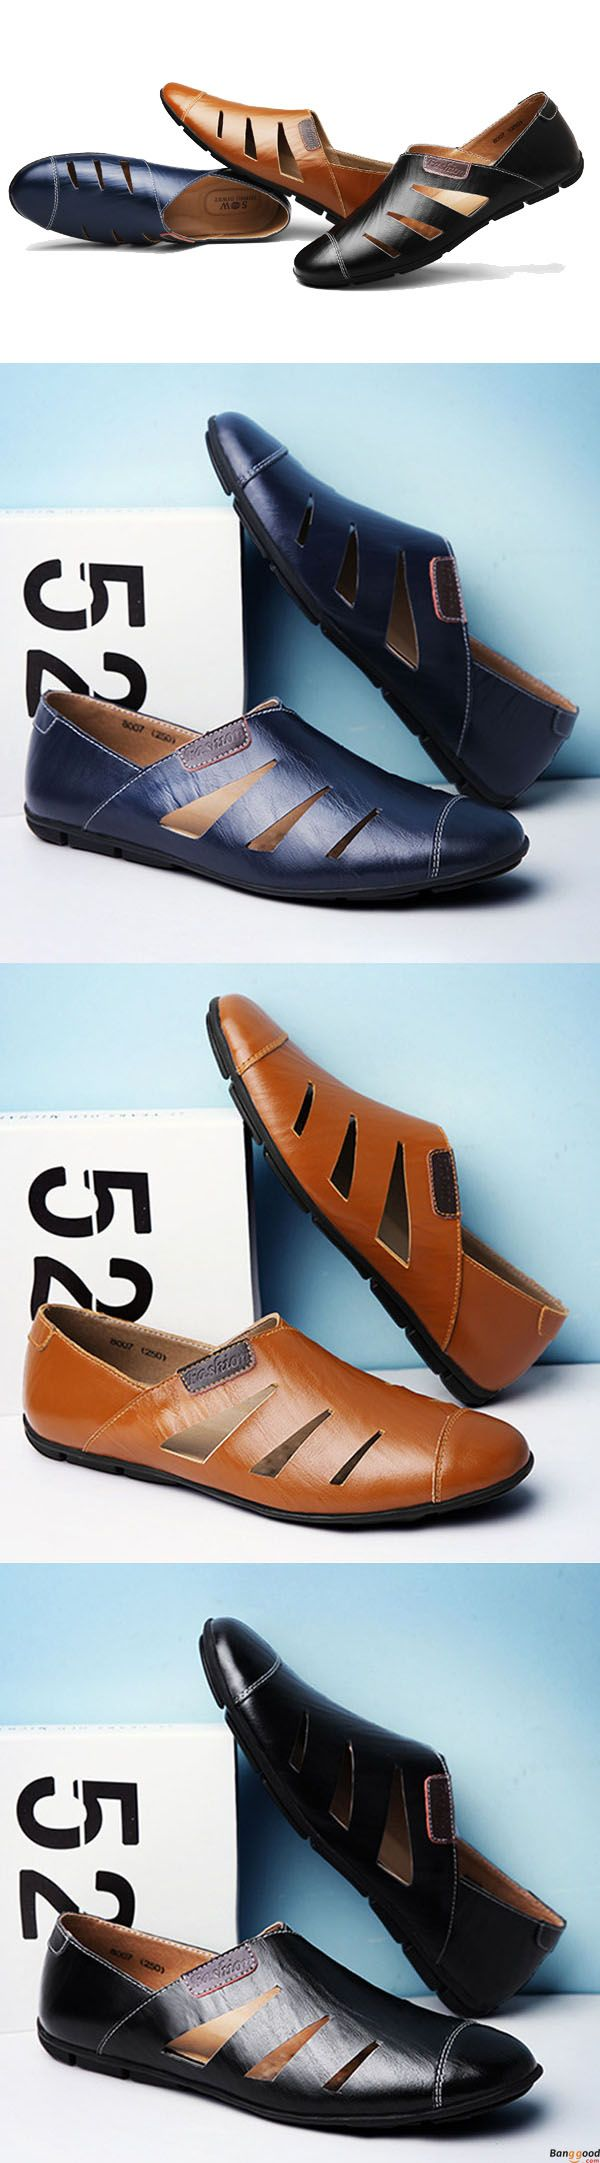 US$45.22+ Free Shipping. 3 colors available. Men loafers, casual comfortable shoes,  oxford shoes, boots, Fashion and chic, casual shoes, men's flats, oxford boots,leather short boots,loafers, casual oxford shoes men's style, chic style, fashion style.  Shop at banggood with super affordable price. #men'sshoes#men'sstyle#chic#style#fashion#style#wintershoes#casual#shoes#casualshoes#boots#oxfordshoes#loafers